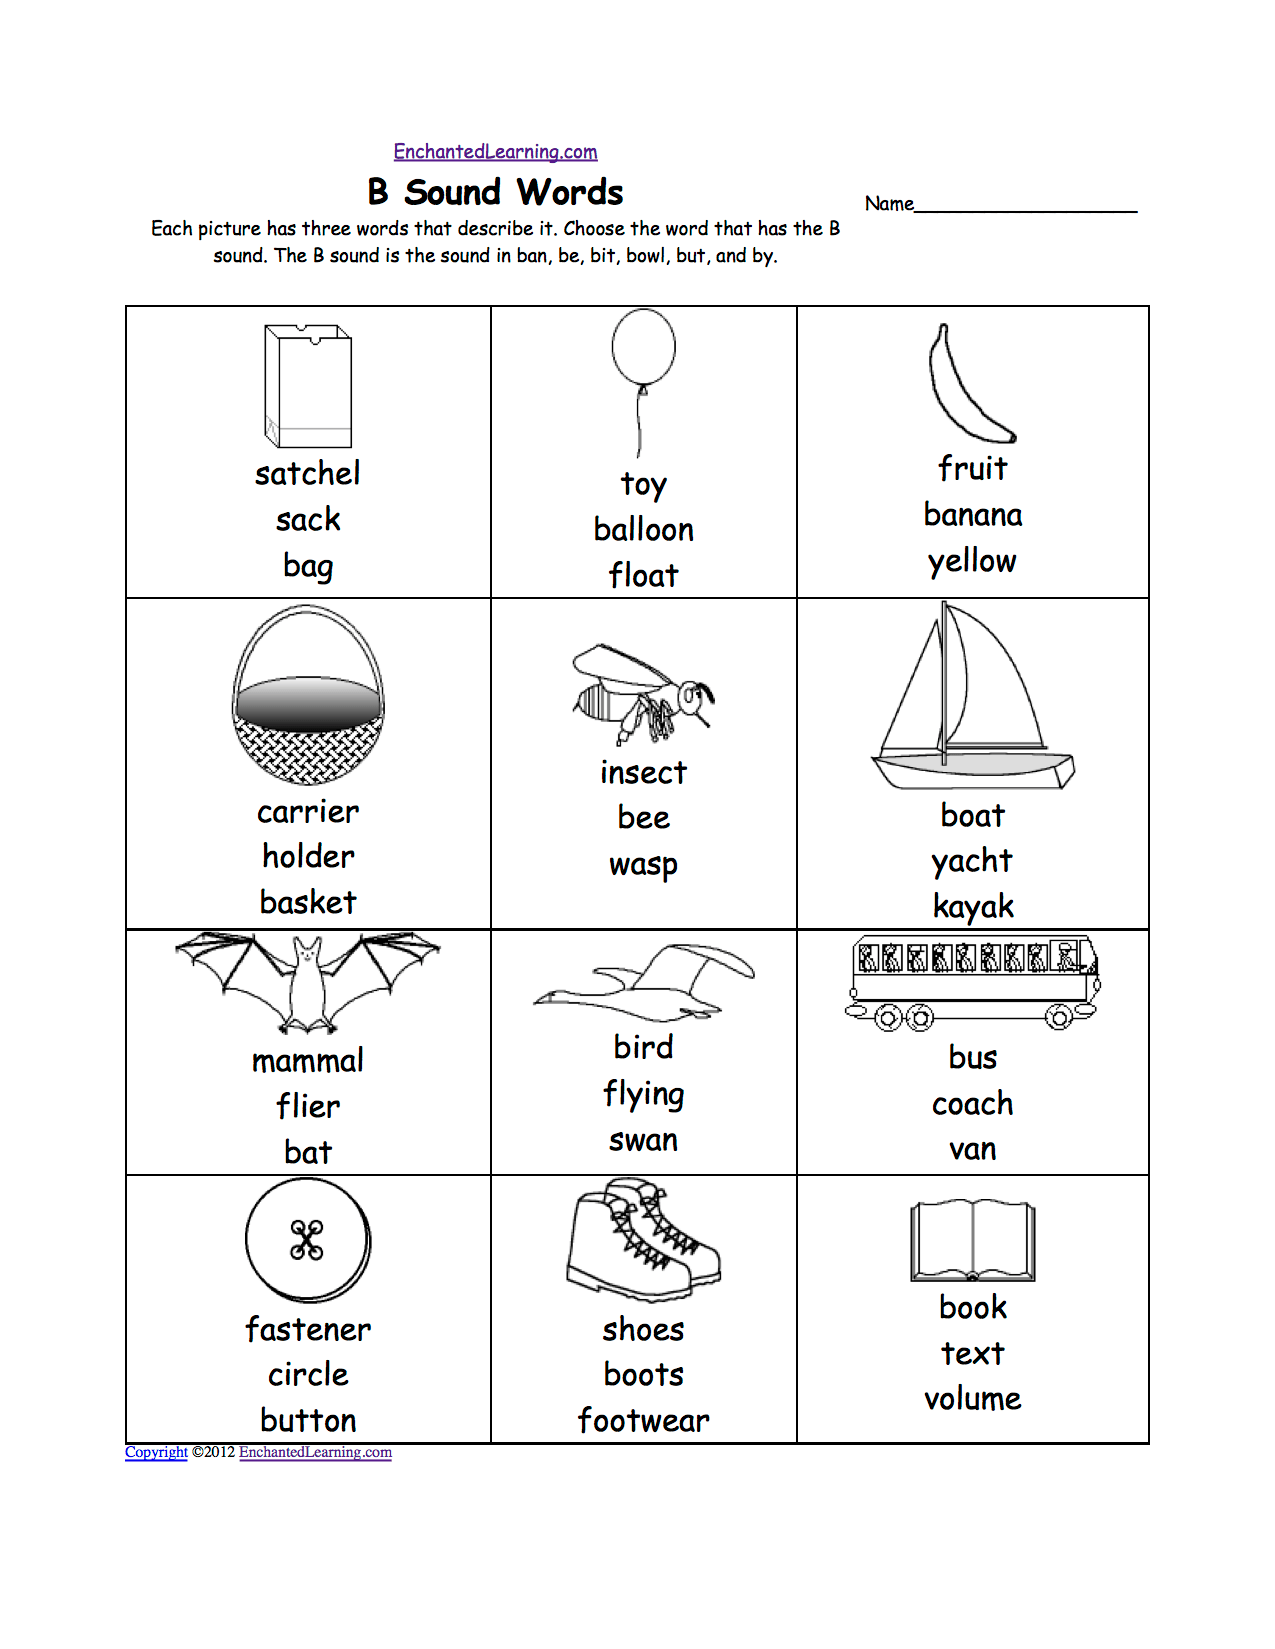 Simple But Tough Worksheet Answers